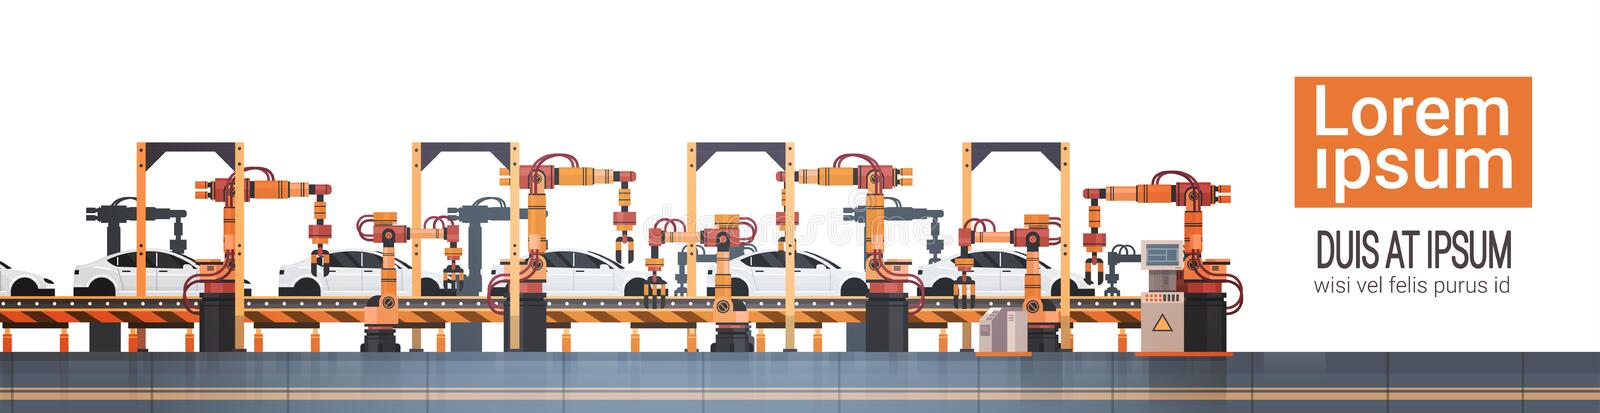 Car Production Conveyor Automatic Assembly Line Machinery Industrial Automation Industry Concept. Flat Vector Illustration vector illustration